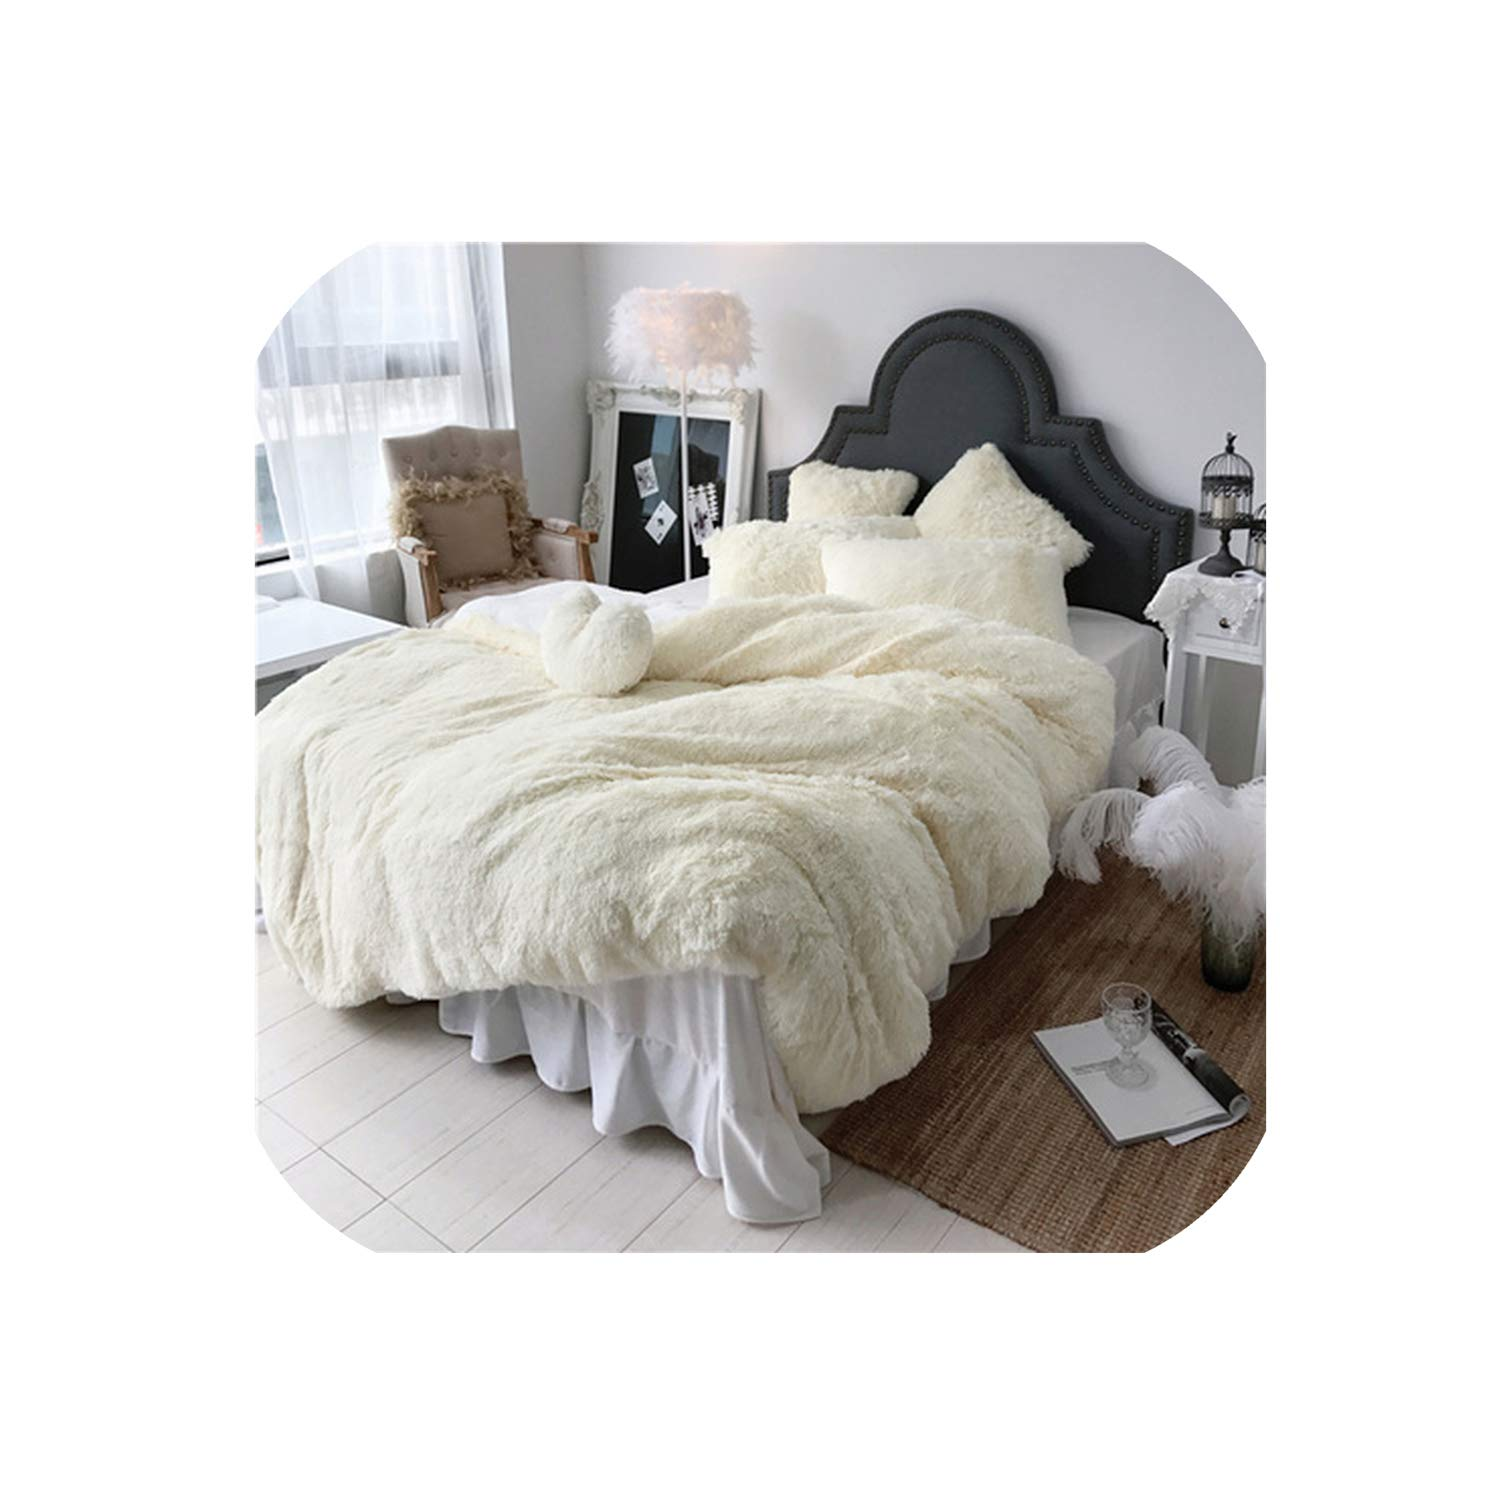 U-See 3/4/6/7 Pcs Pure Color Mink Velvet Bedding Sets 8 Colors Lambs Wool Fleece Duvet Cover Set Bed Skirt Fitted Twin Queen King Size,1,Queen A Size 4Pcs